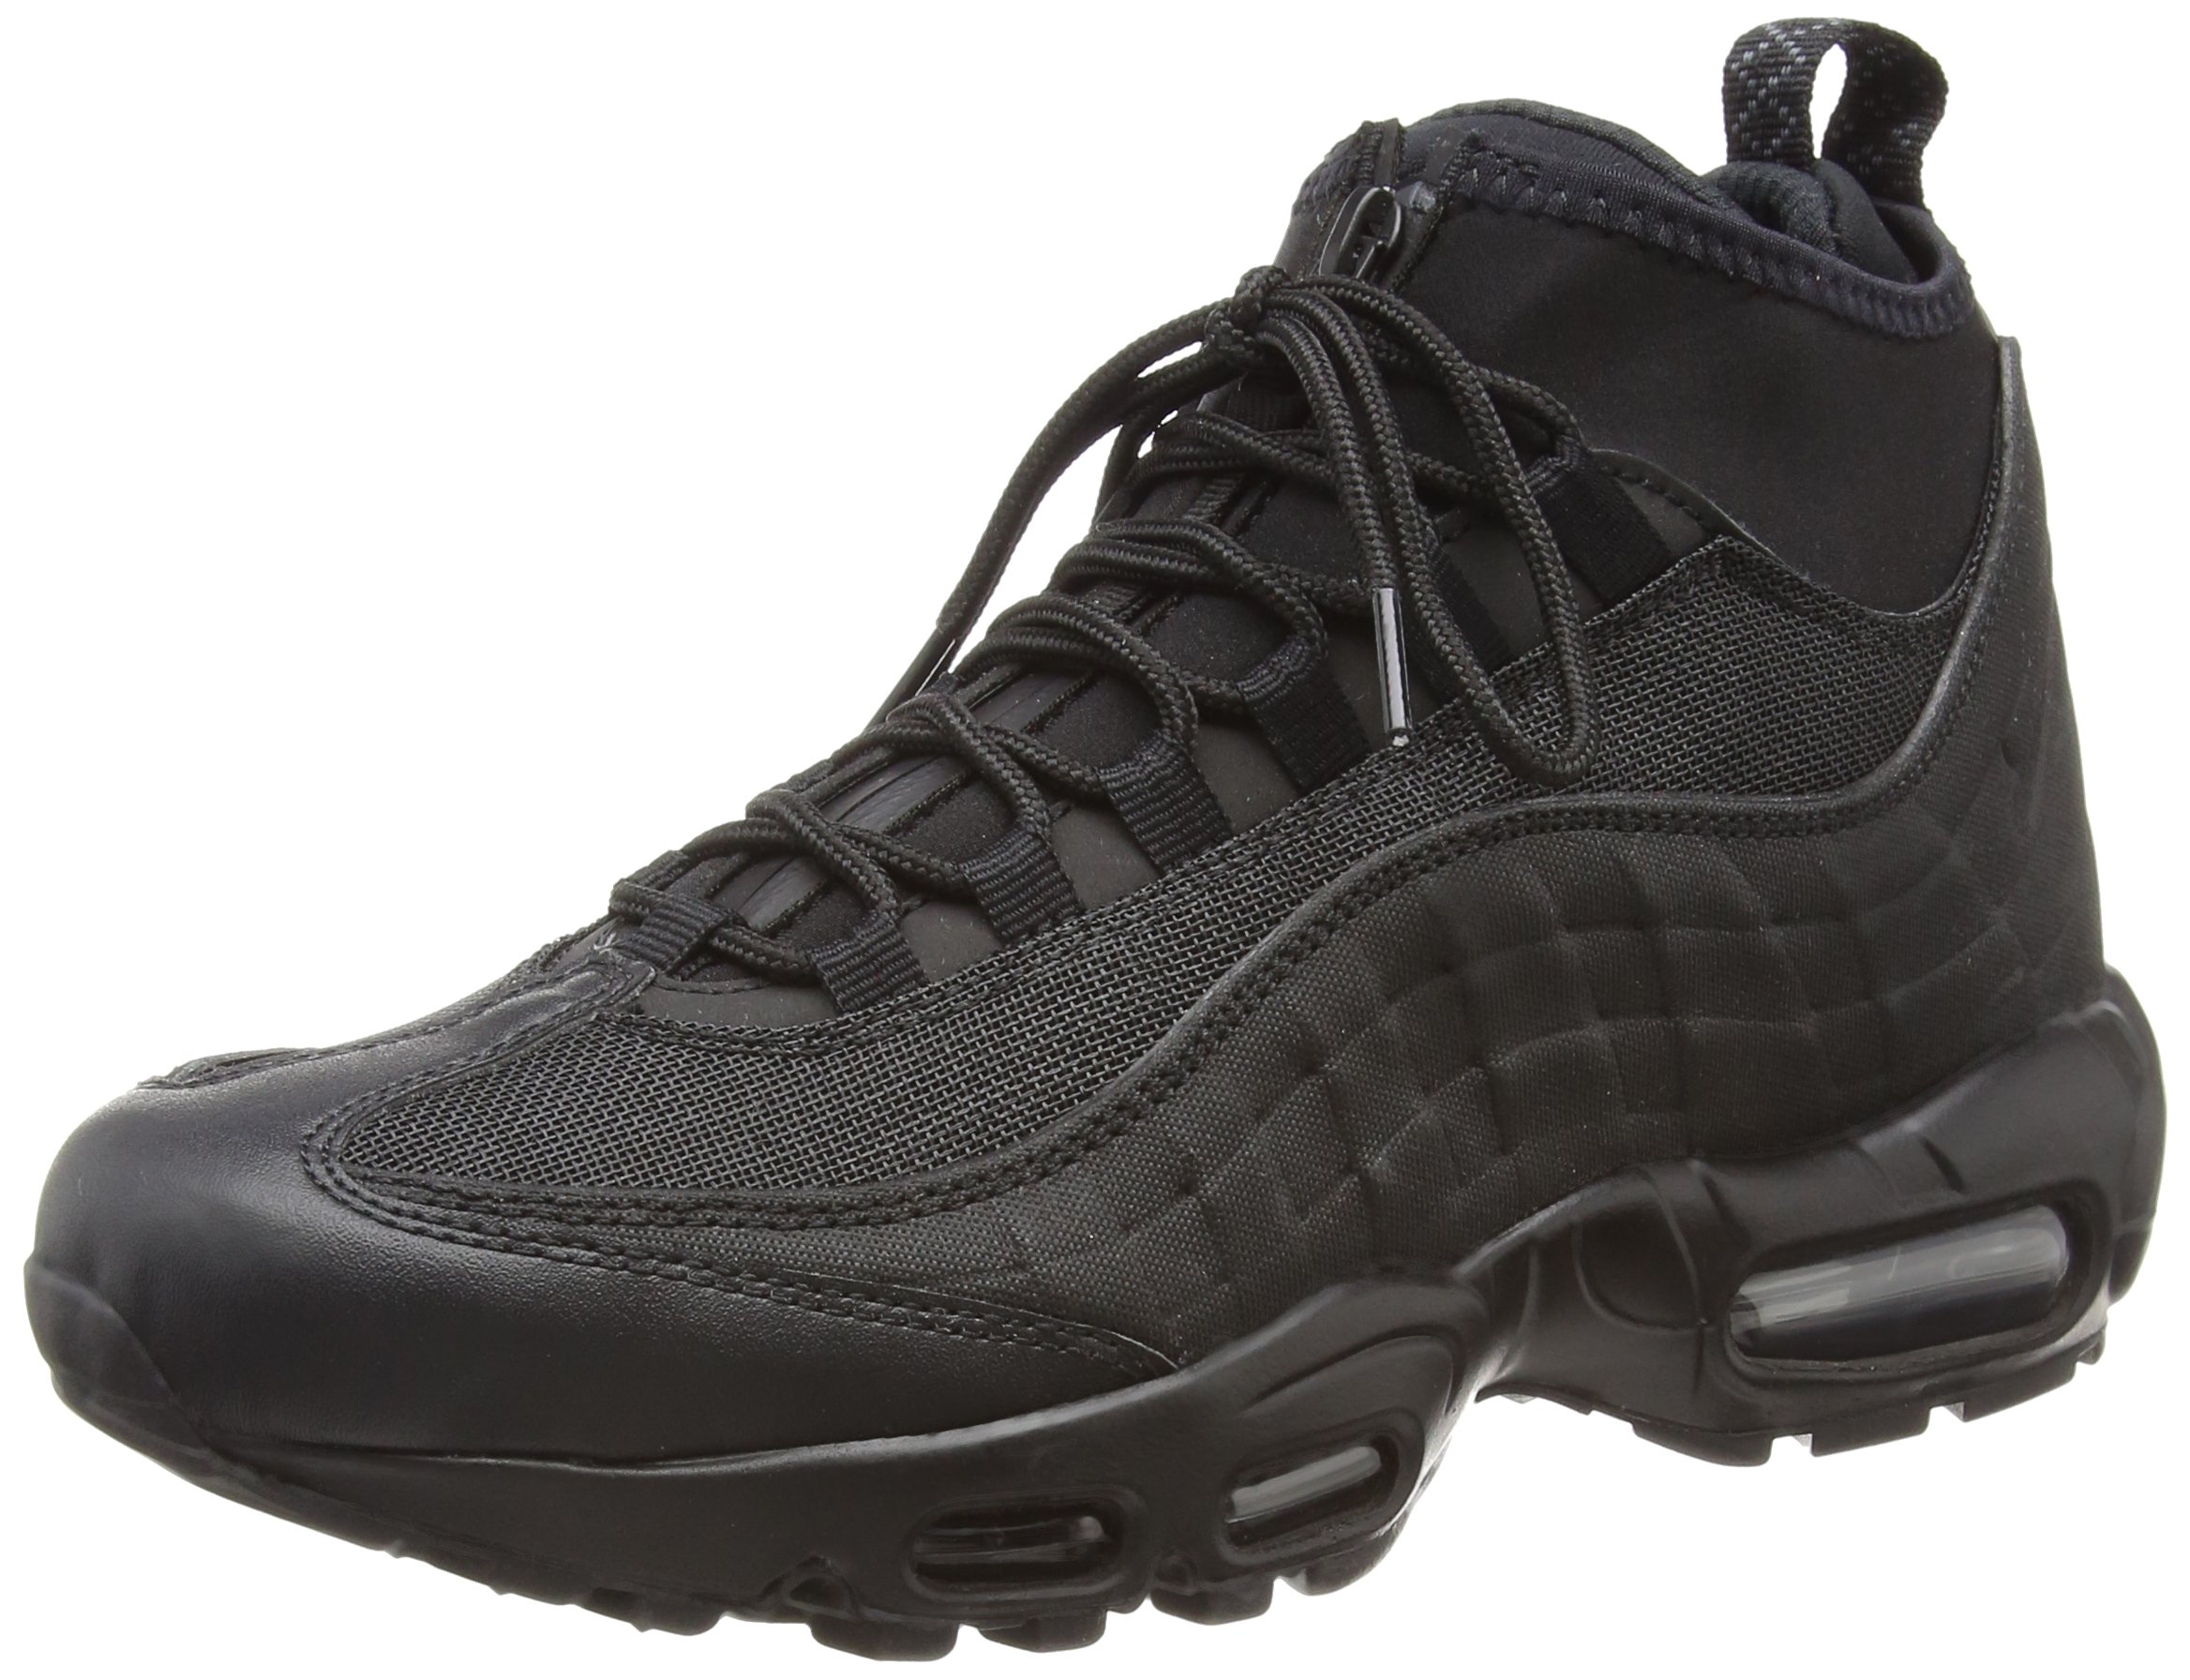 separation shoes b90f7 89a6a NIKE AIR Max 95 Sneakerboot Mens Running-Shoes 806809-002_8 - Black/Black